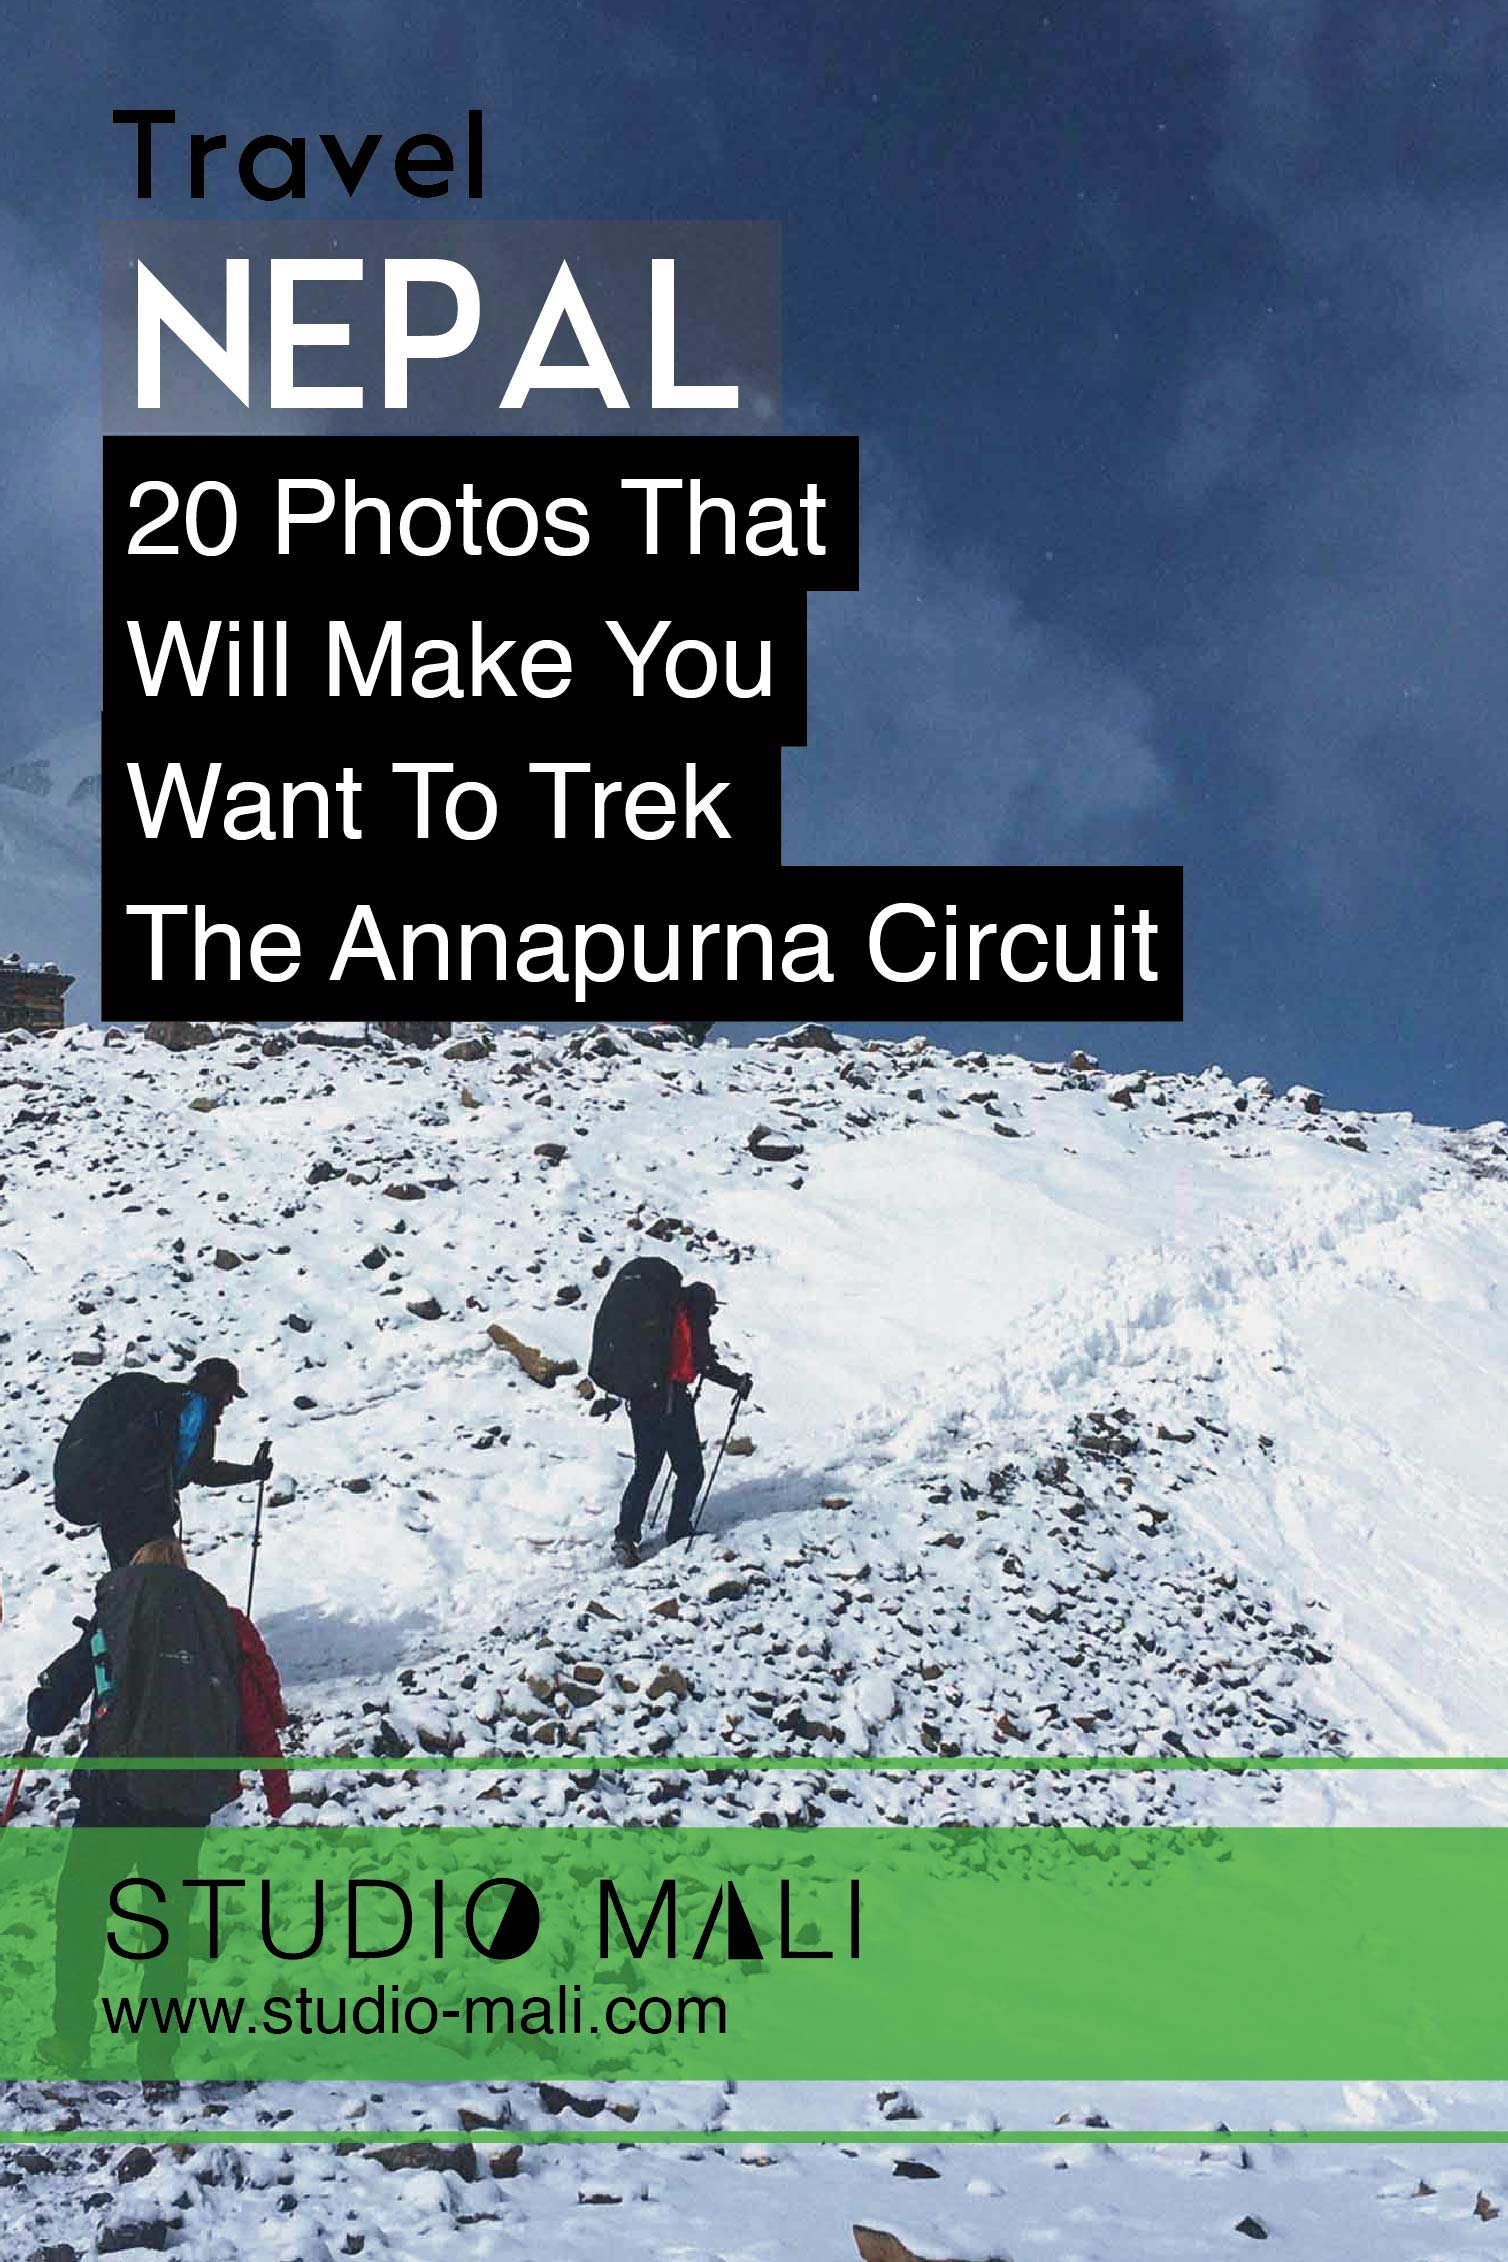 Nepal- 20 Photos That Will Make You Want To Trek The Annapurna Circuit By Studio Mali